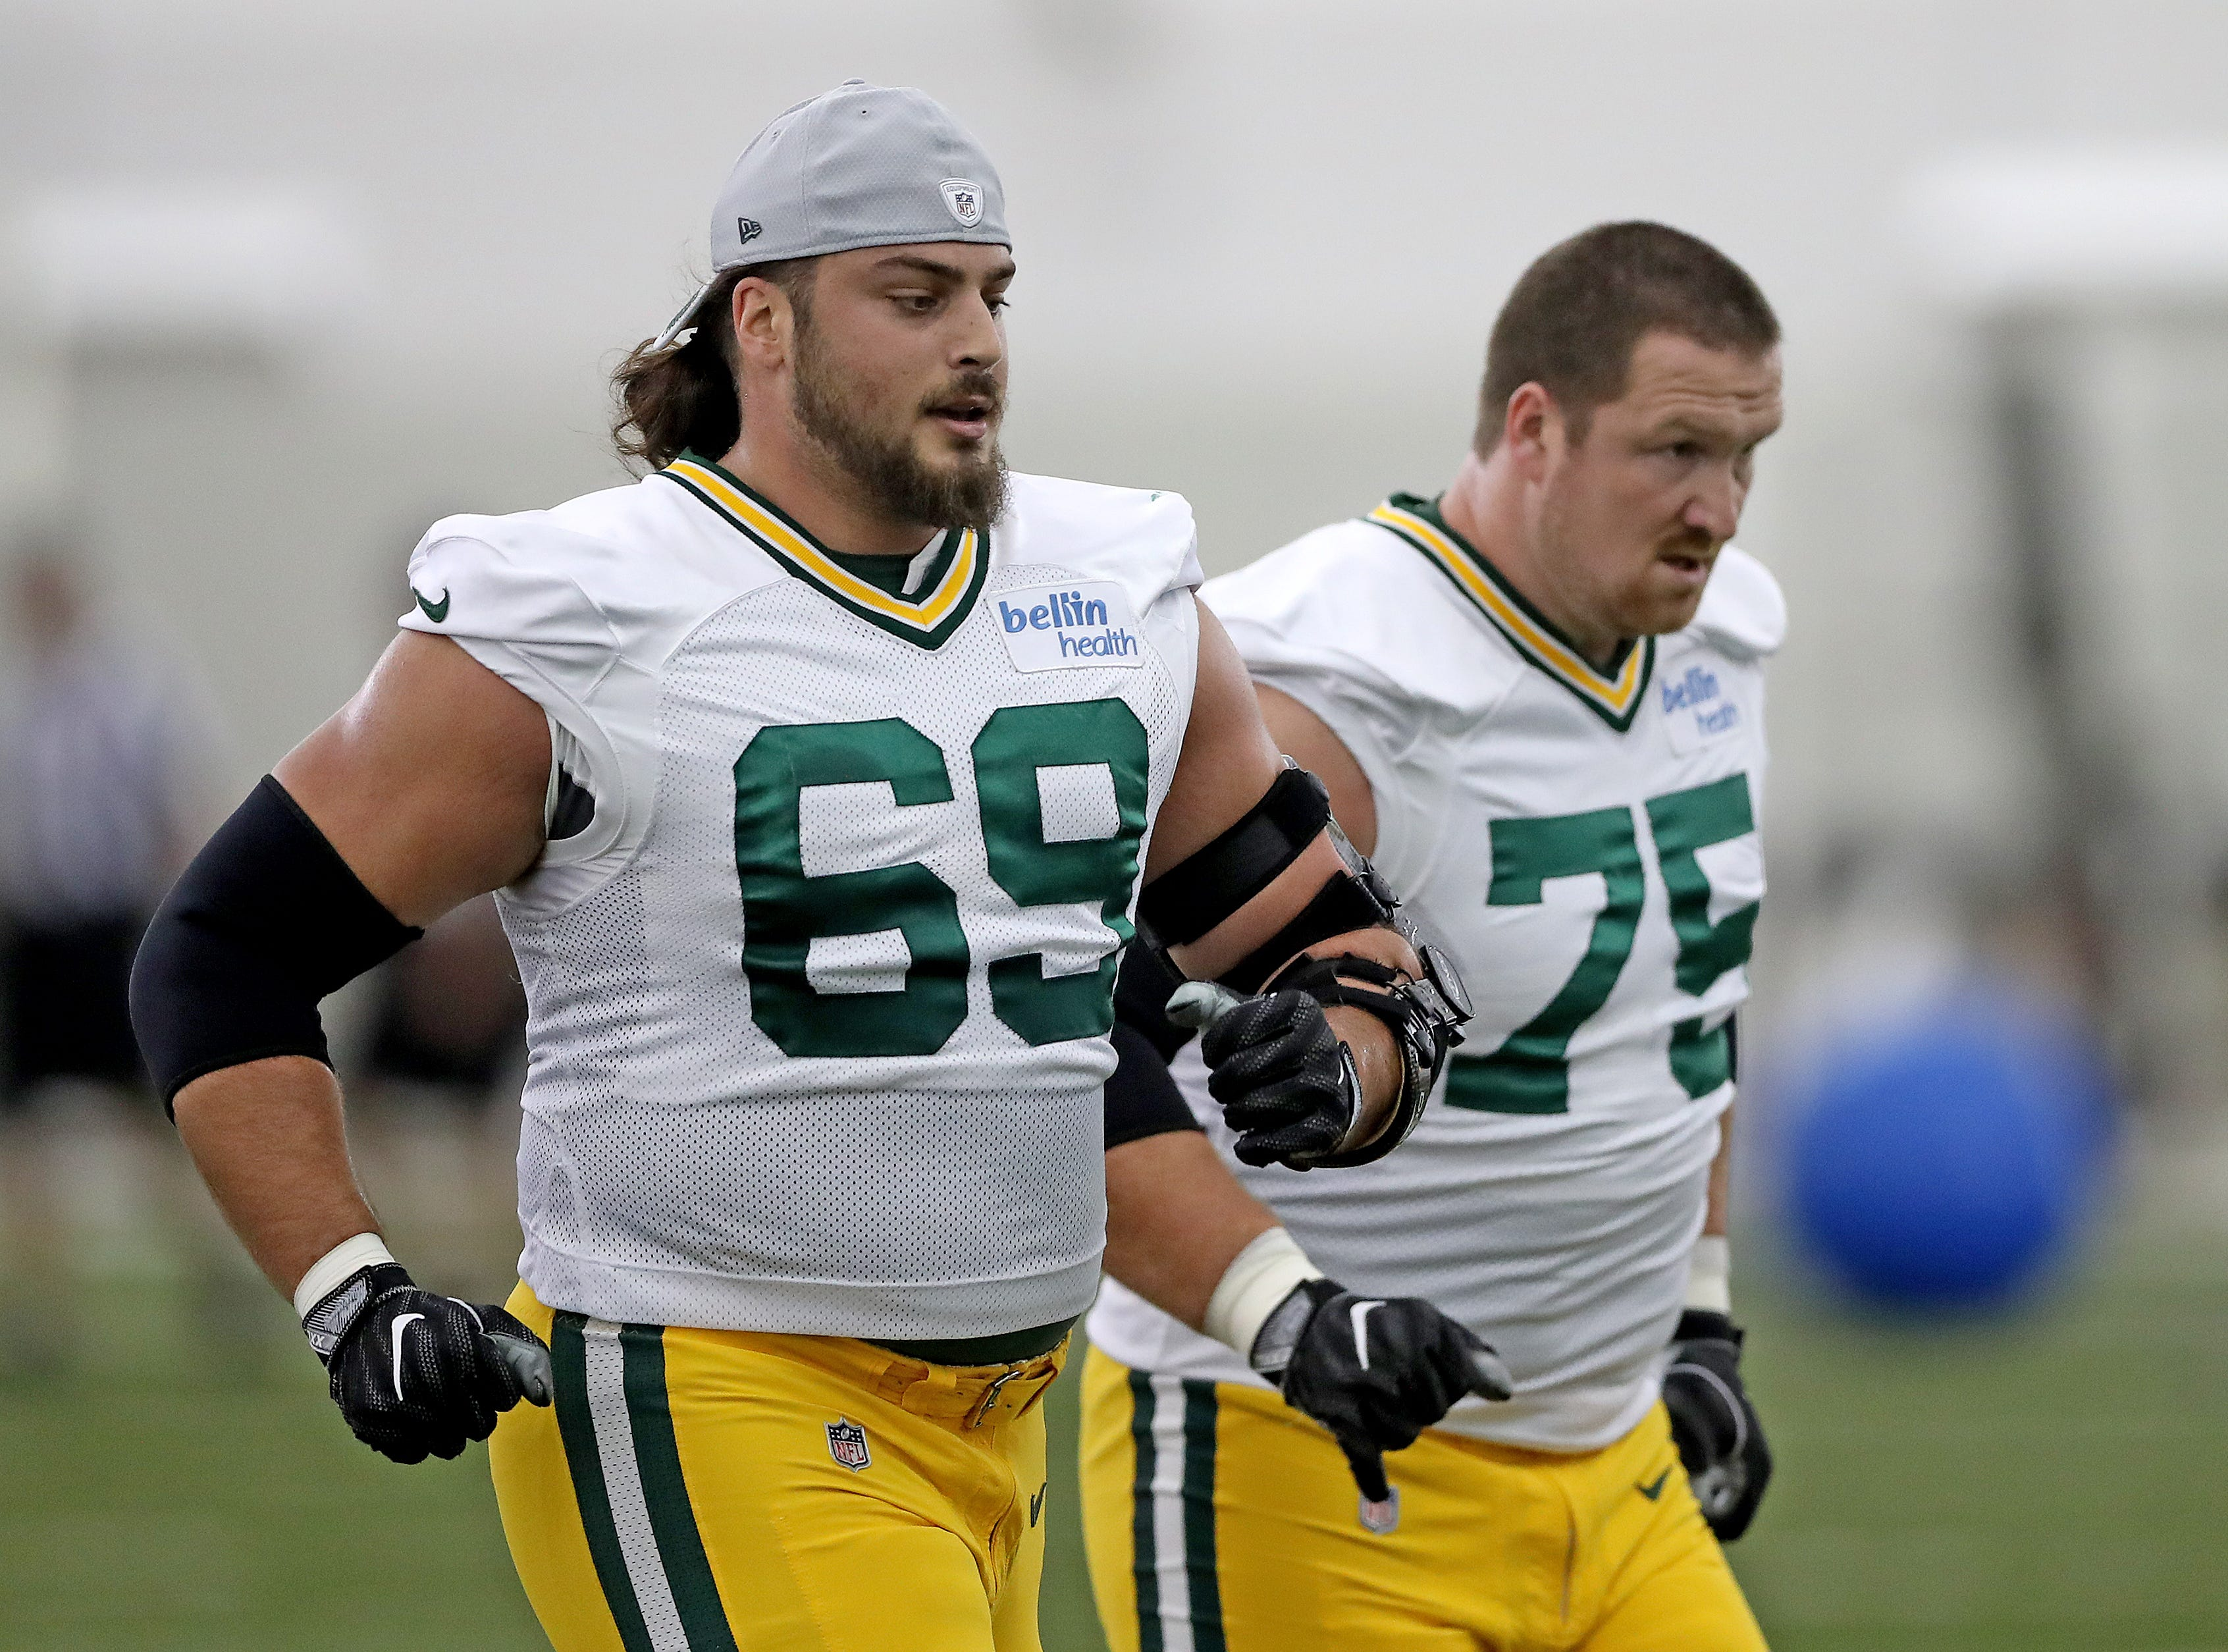 Green Bay Packers offensive tackle David Bakhtiari (69) runs with offensive tackle Bryan Bulaga (75) during Packers practice in the Don Hutson Center Monday, September 3, 2018 in Ashwaubenon, Wis